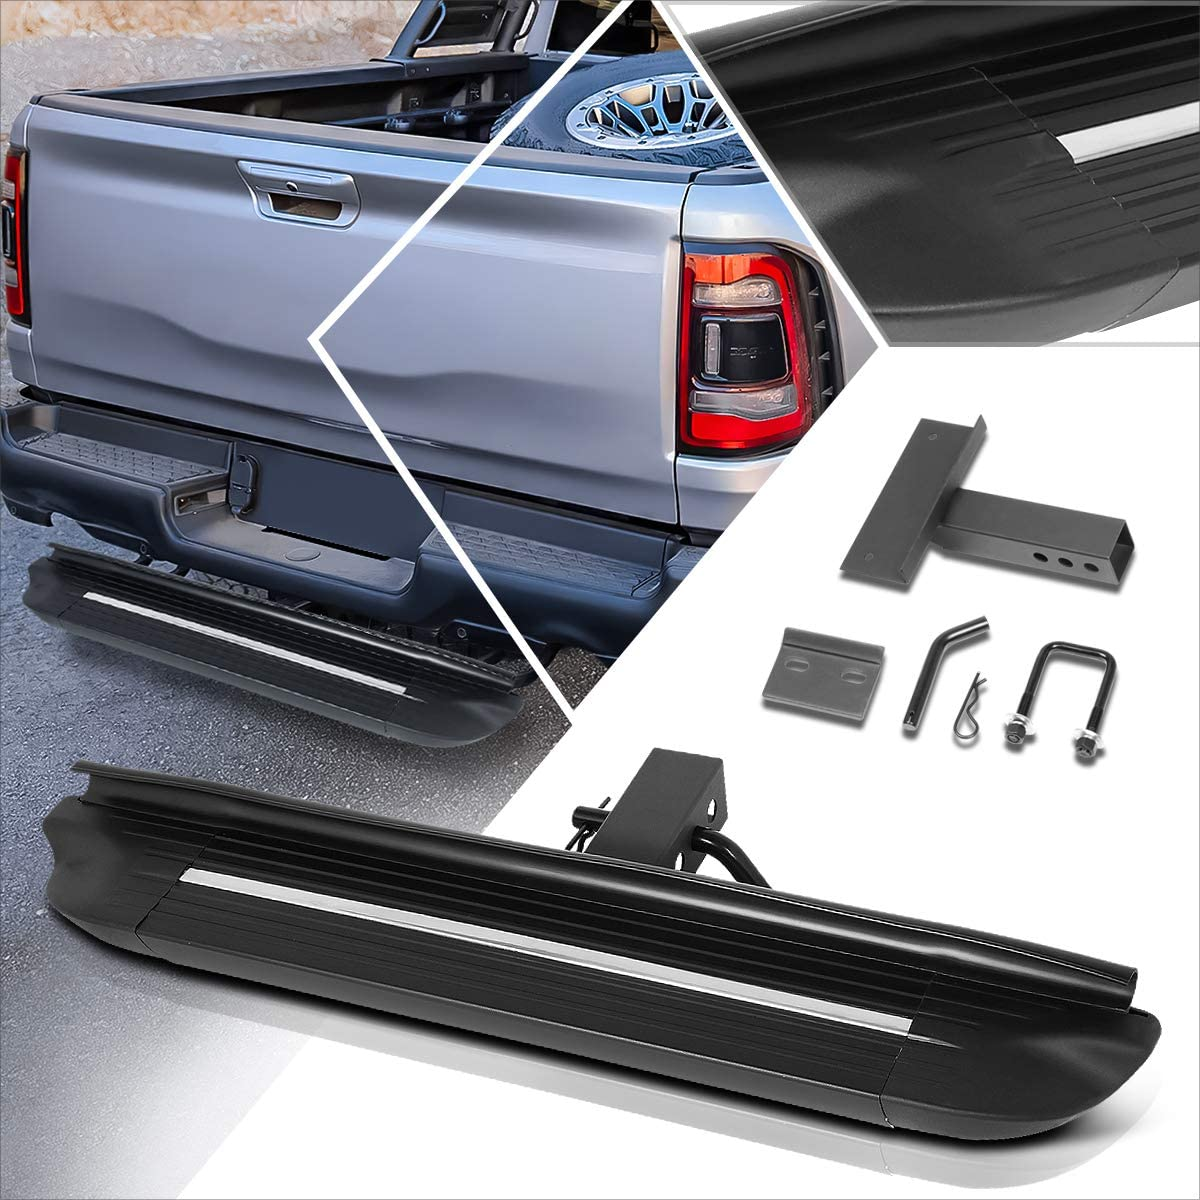 Universal Black Towing Hitch Step Board Inch 2 Tra Max 57% OFF Receiver Direct stock discount Fits